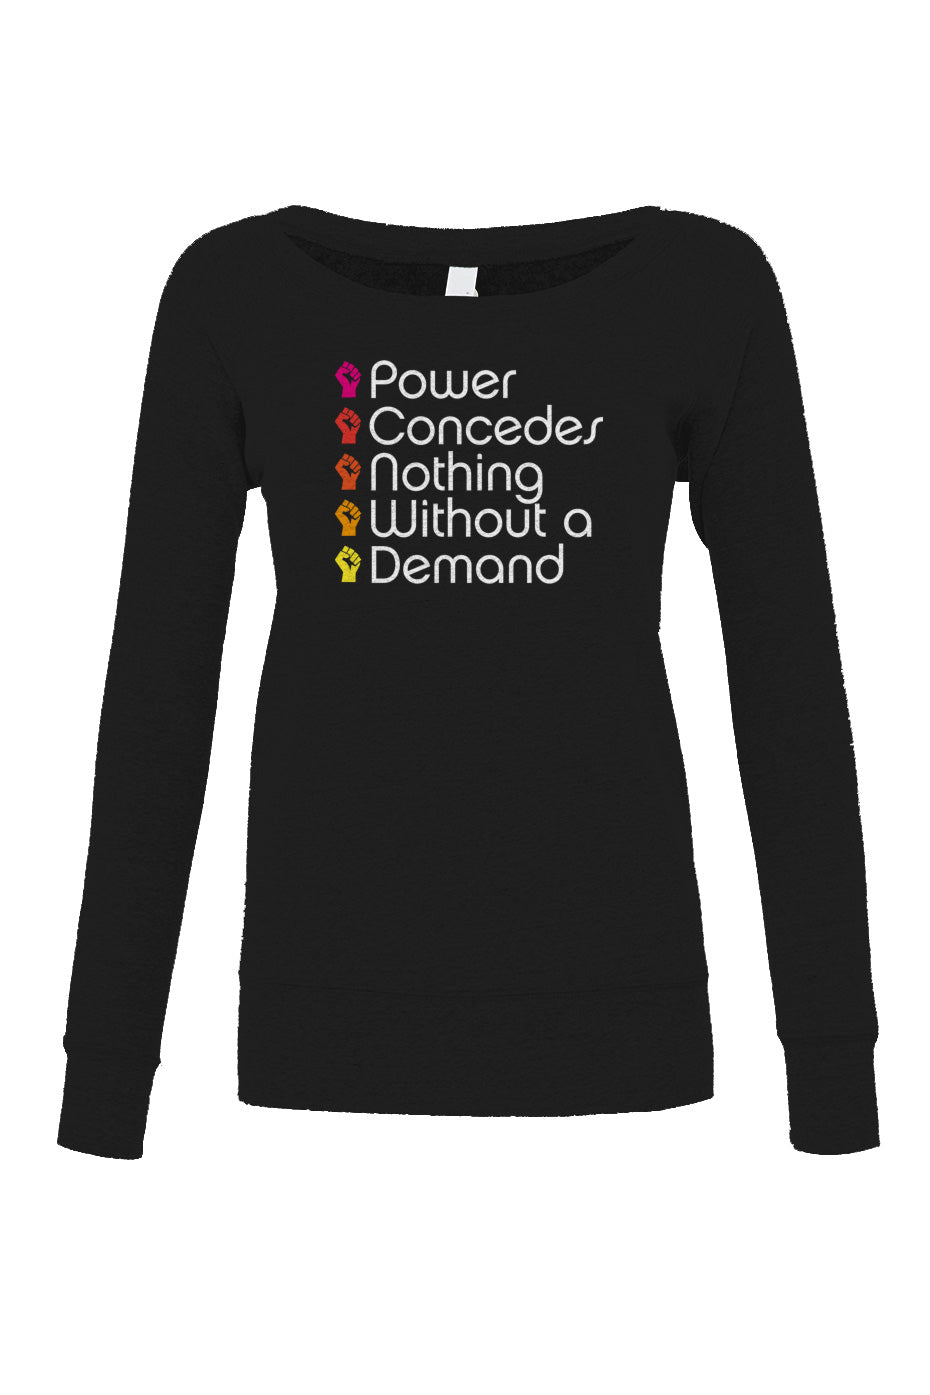 Women's Power Concedes Nothing Without a Demand Scoop Neck Fleece